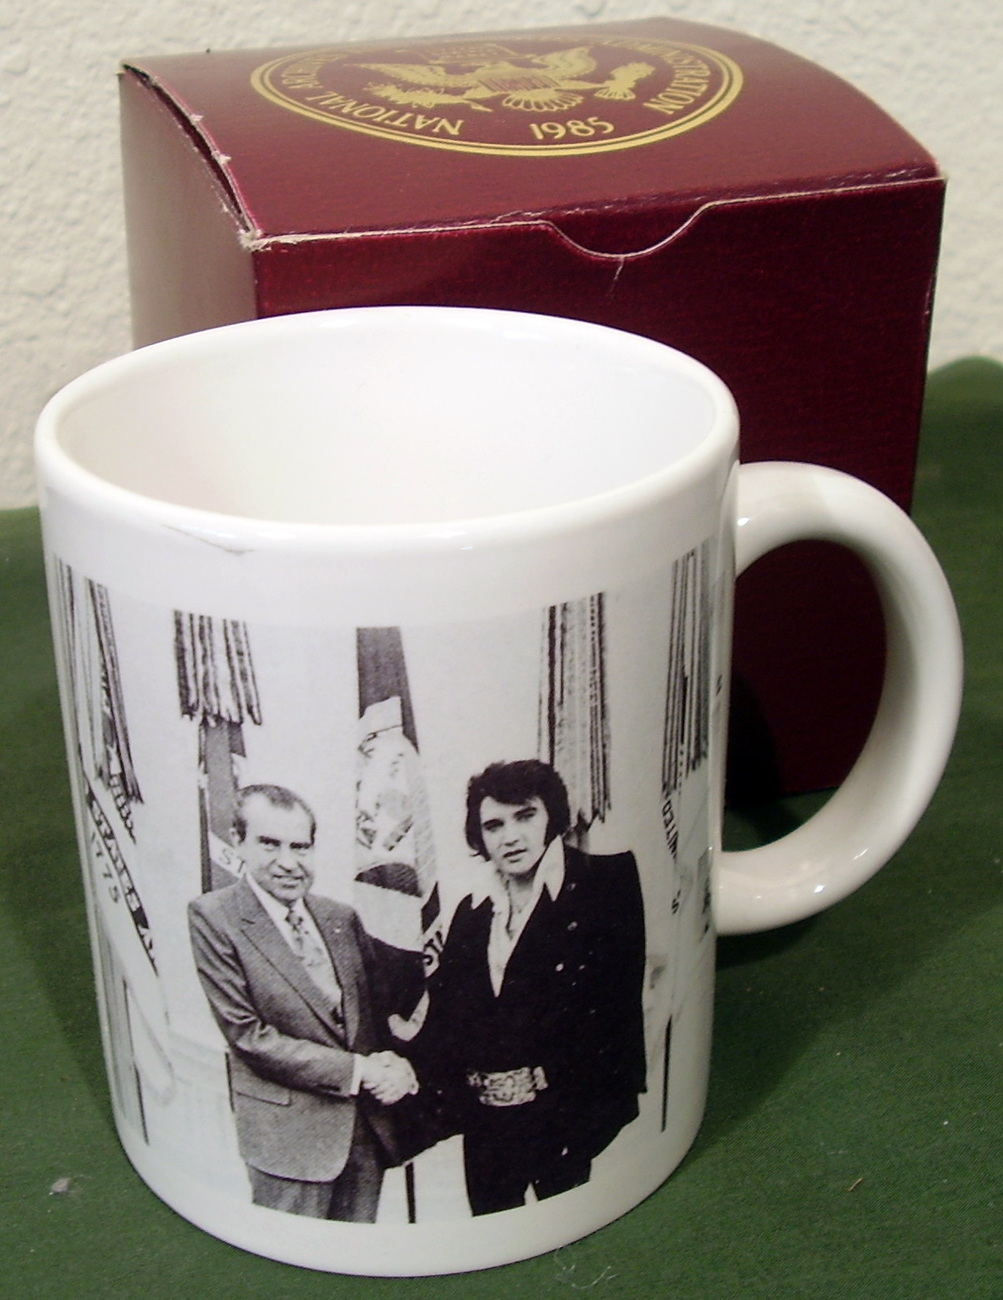 Nixons Coffee Mail: Elvis Presley Richard Nixon Coffee Cup Mug